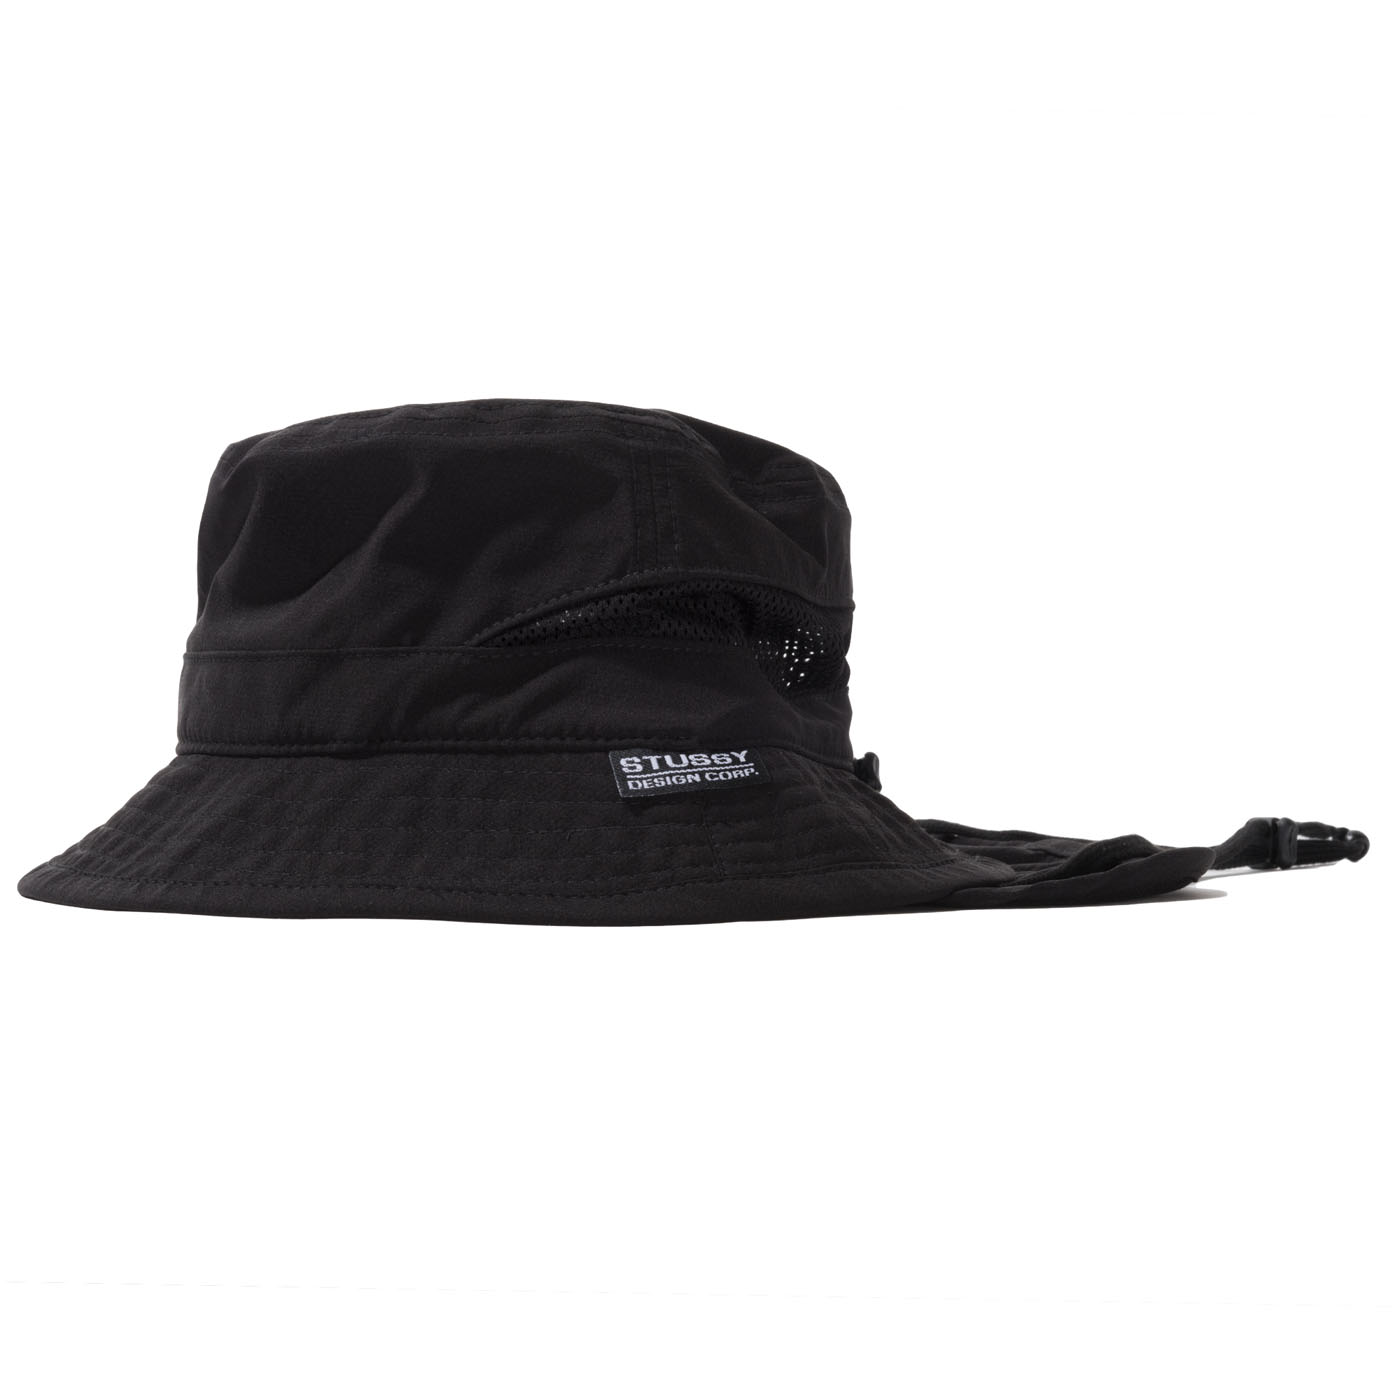 Stussy Extra Fly Gear - Products - 41.jpg